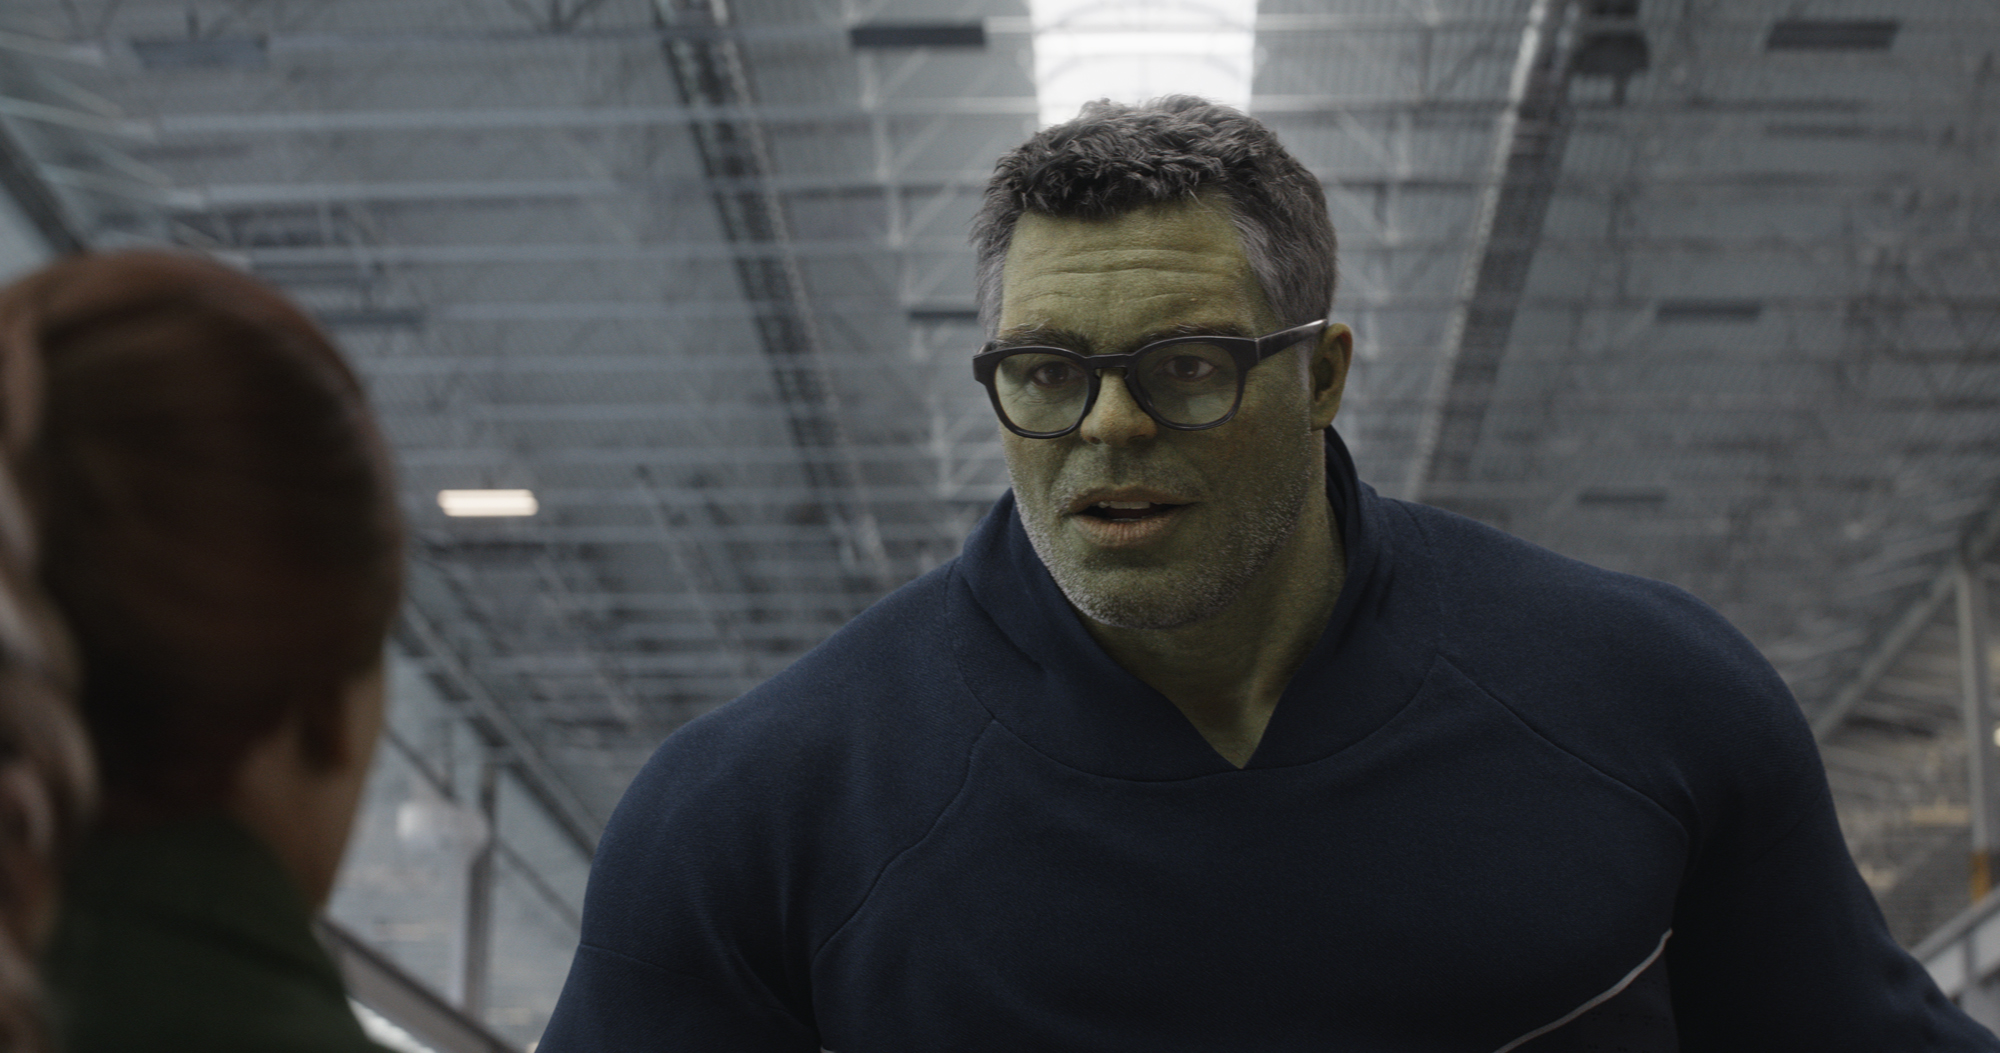 Mark Ruffalo as Professor Hulk in endgame